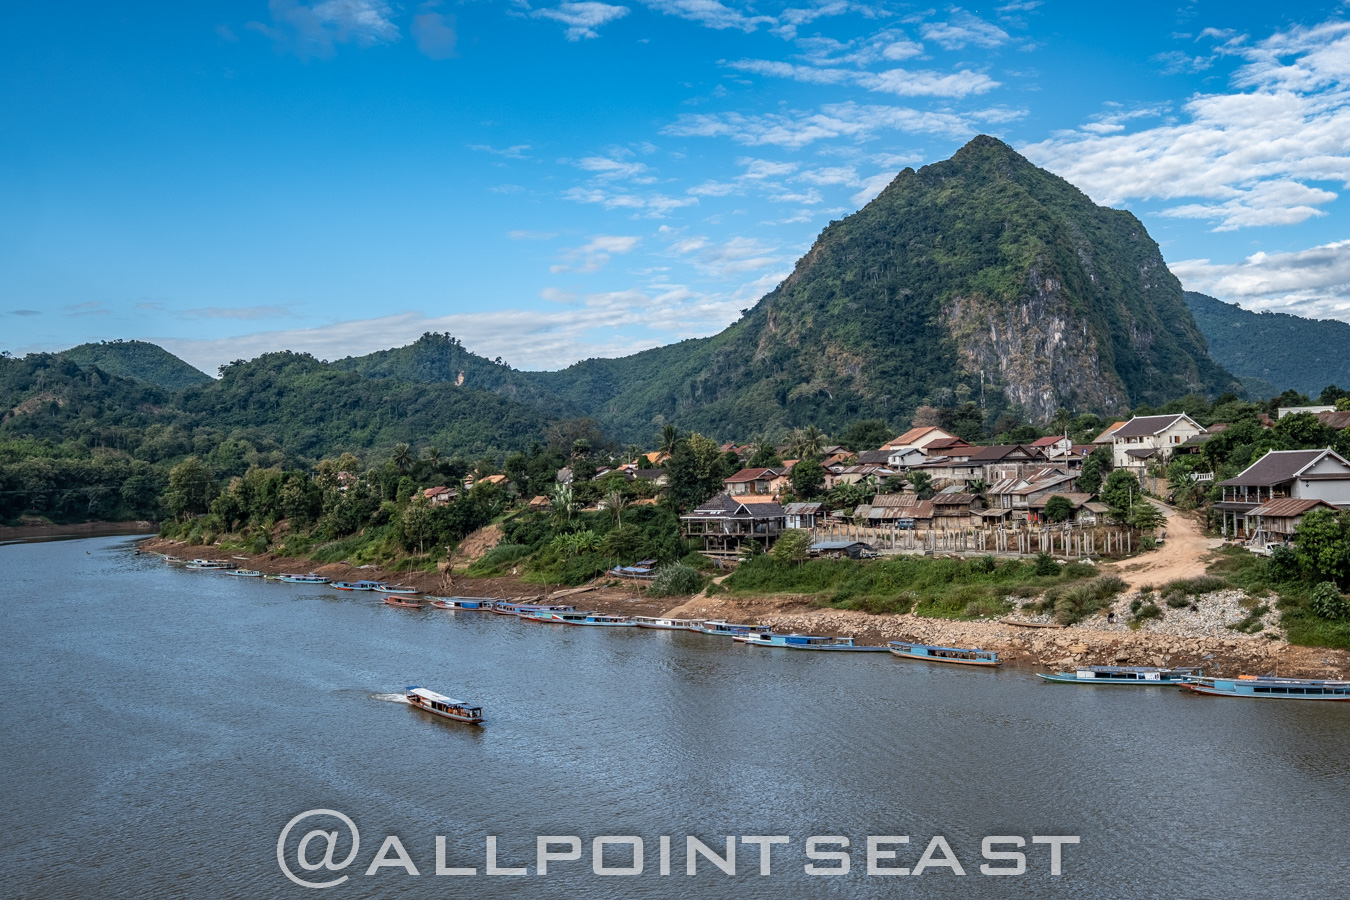 Laos photography tour. Nong Khiaw by Jeff Pergiois